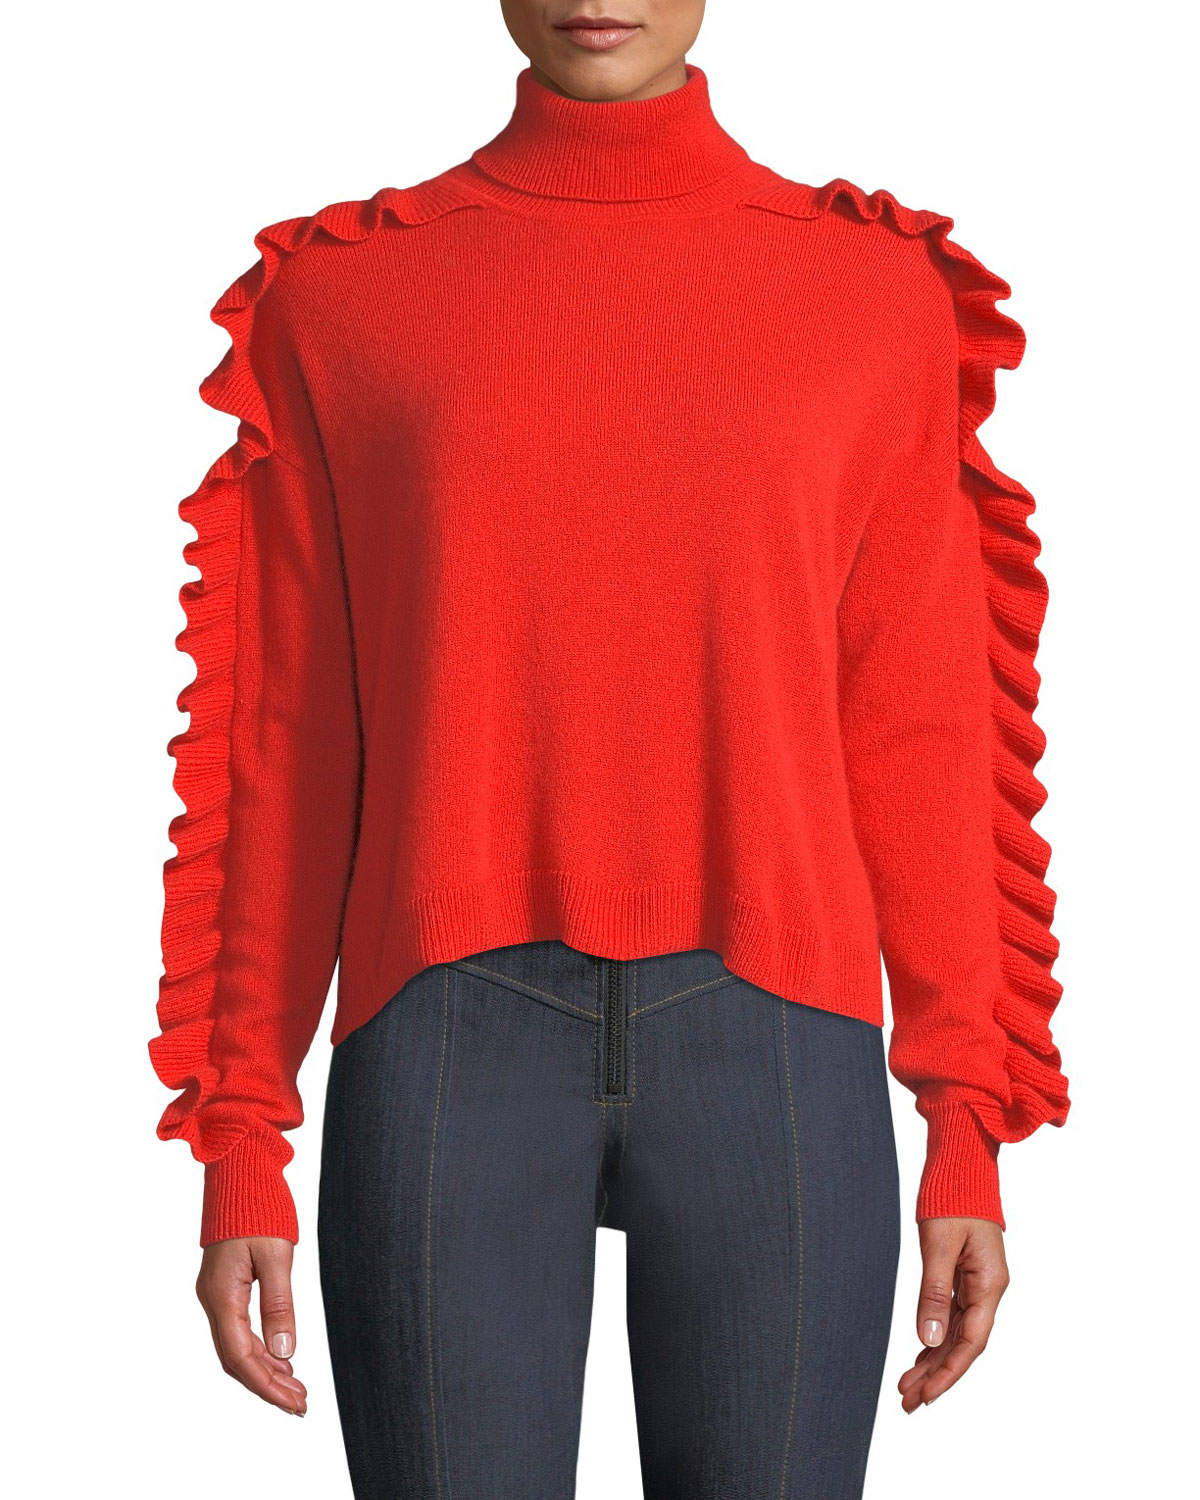 Tous Les Jours Savanna Ruffle-Trim Cashmere Turtleneck Sweater in Grenadine